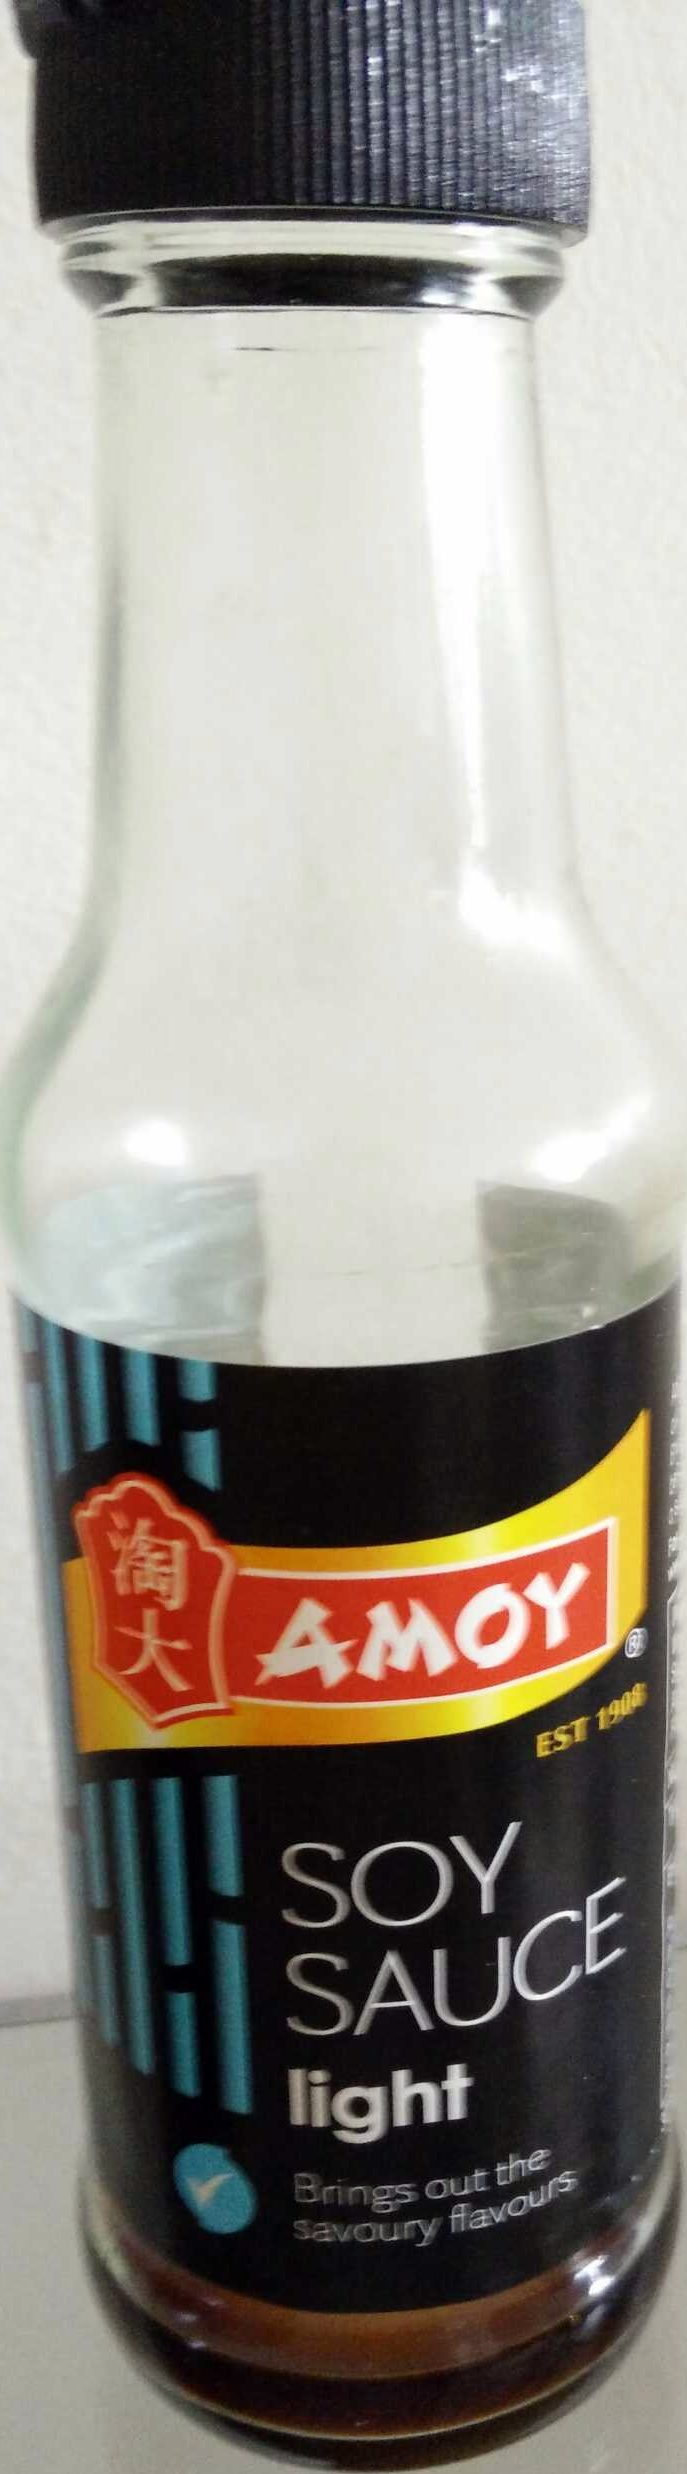 Soy sauce light 173 g - Product